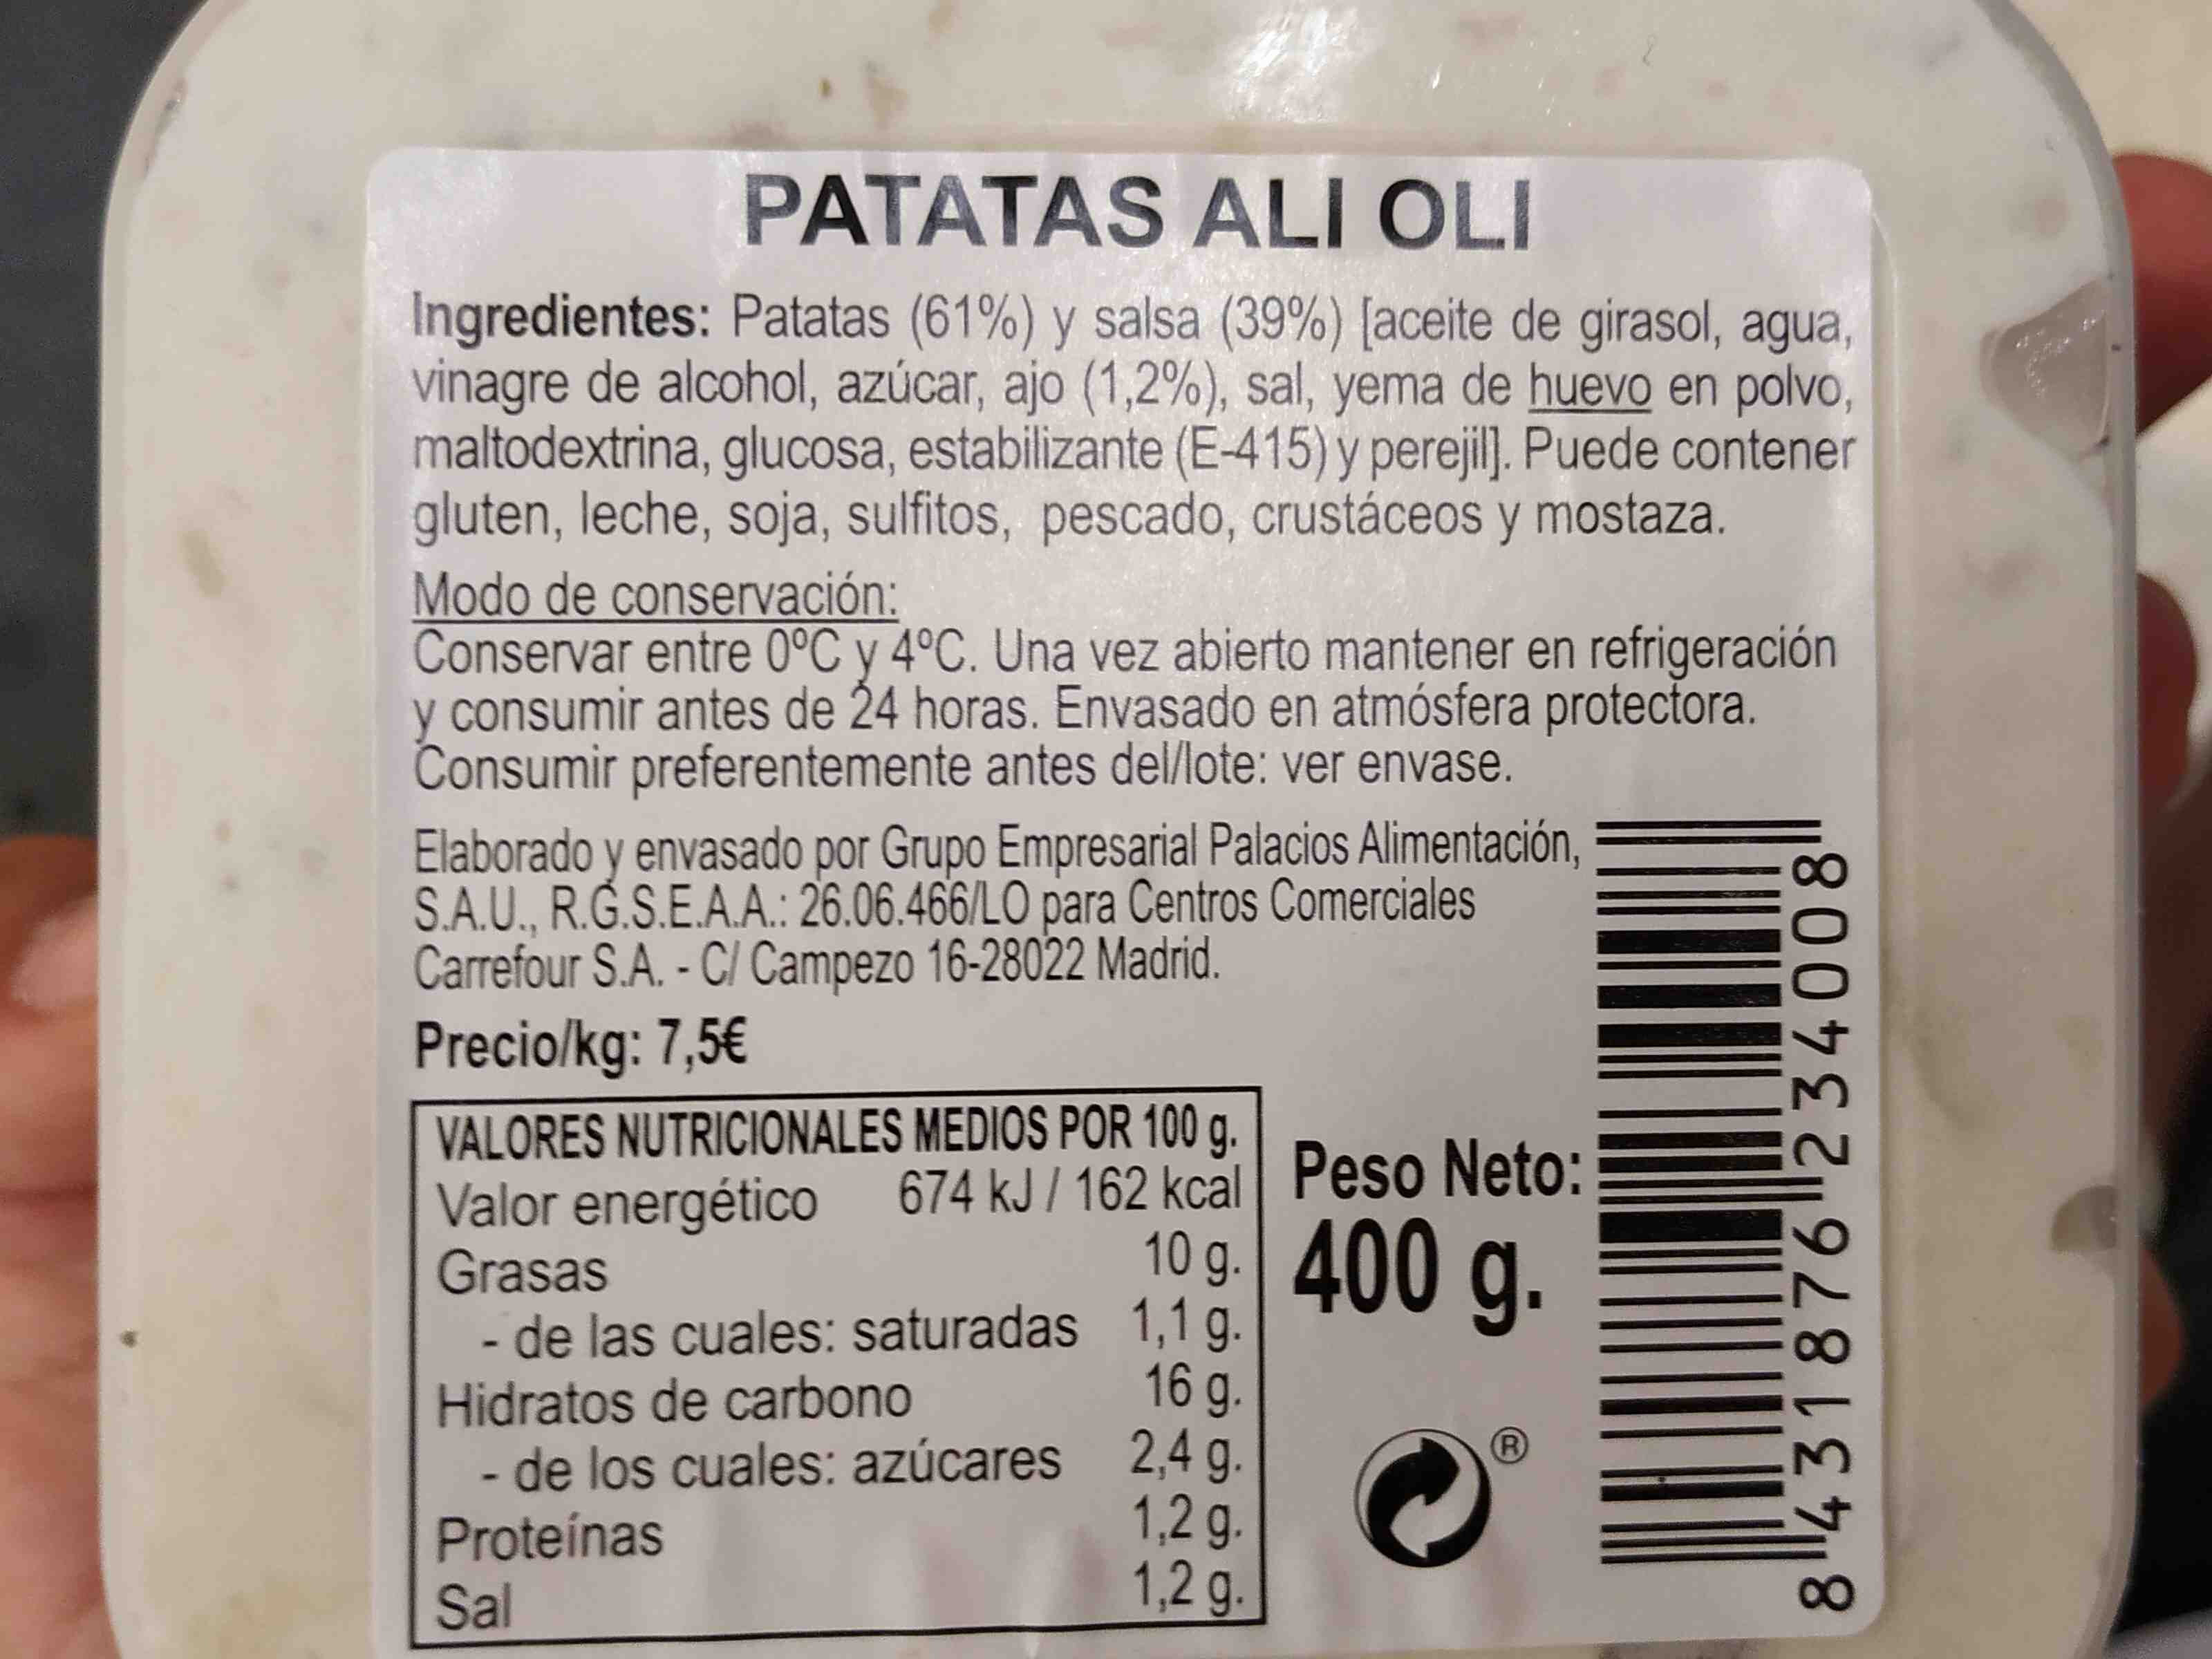 Patatas ali oli Carrefour - Ingredients